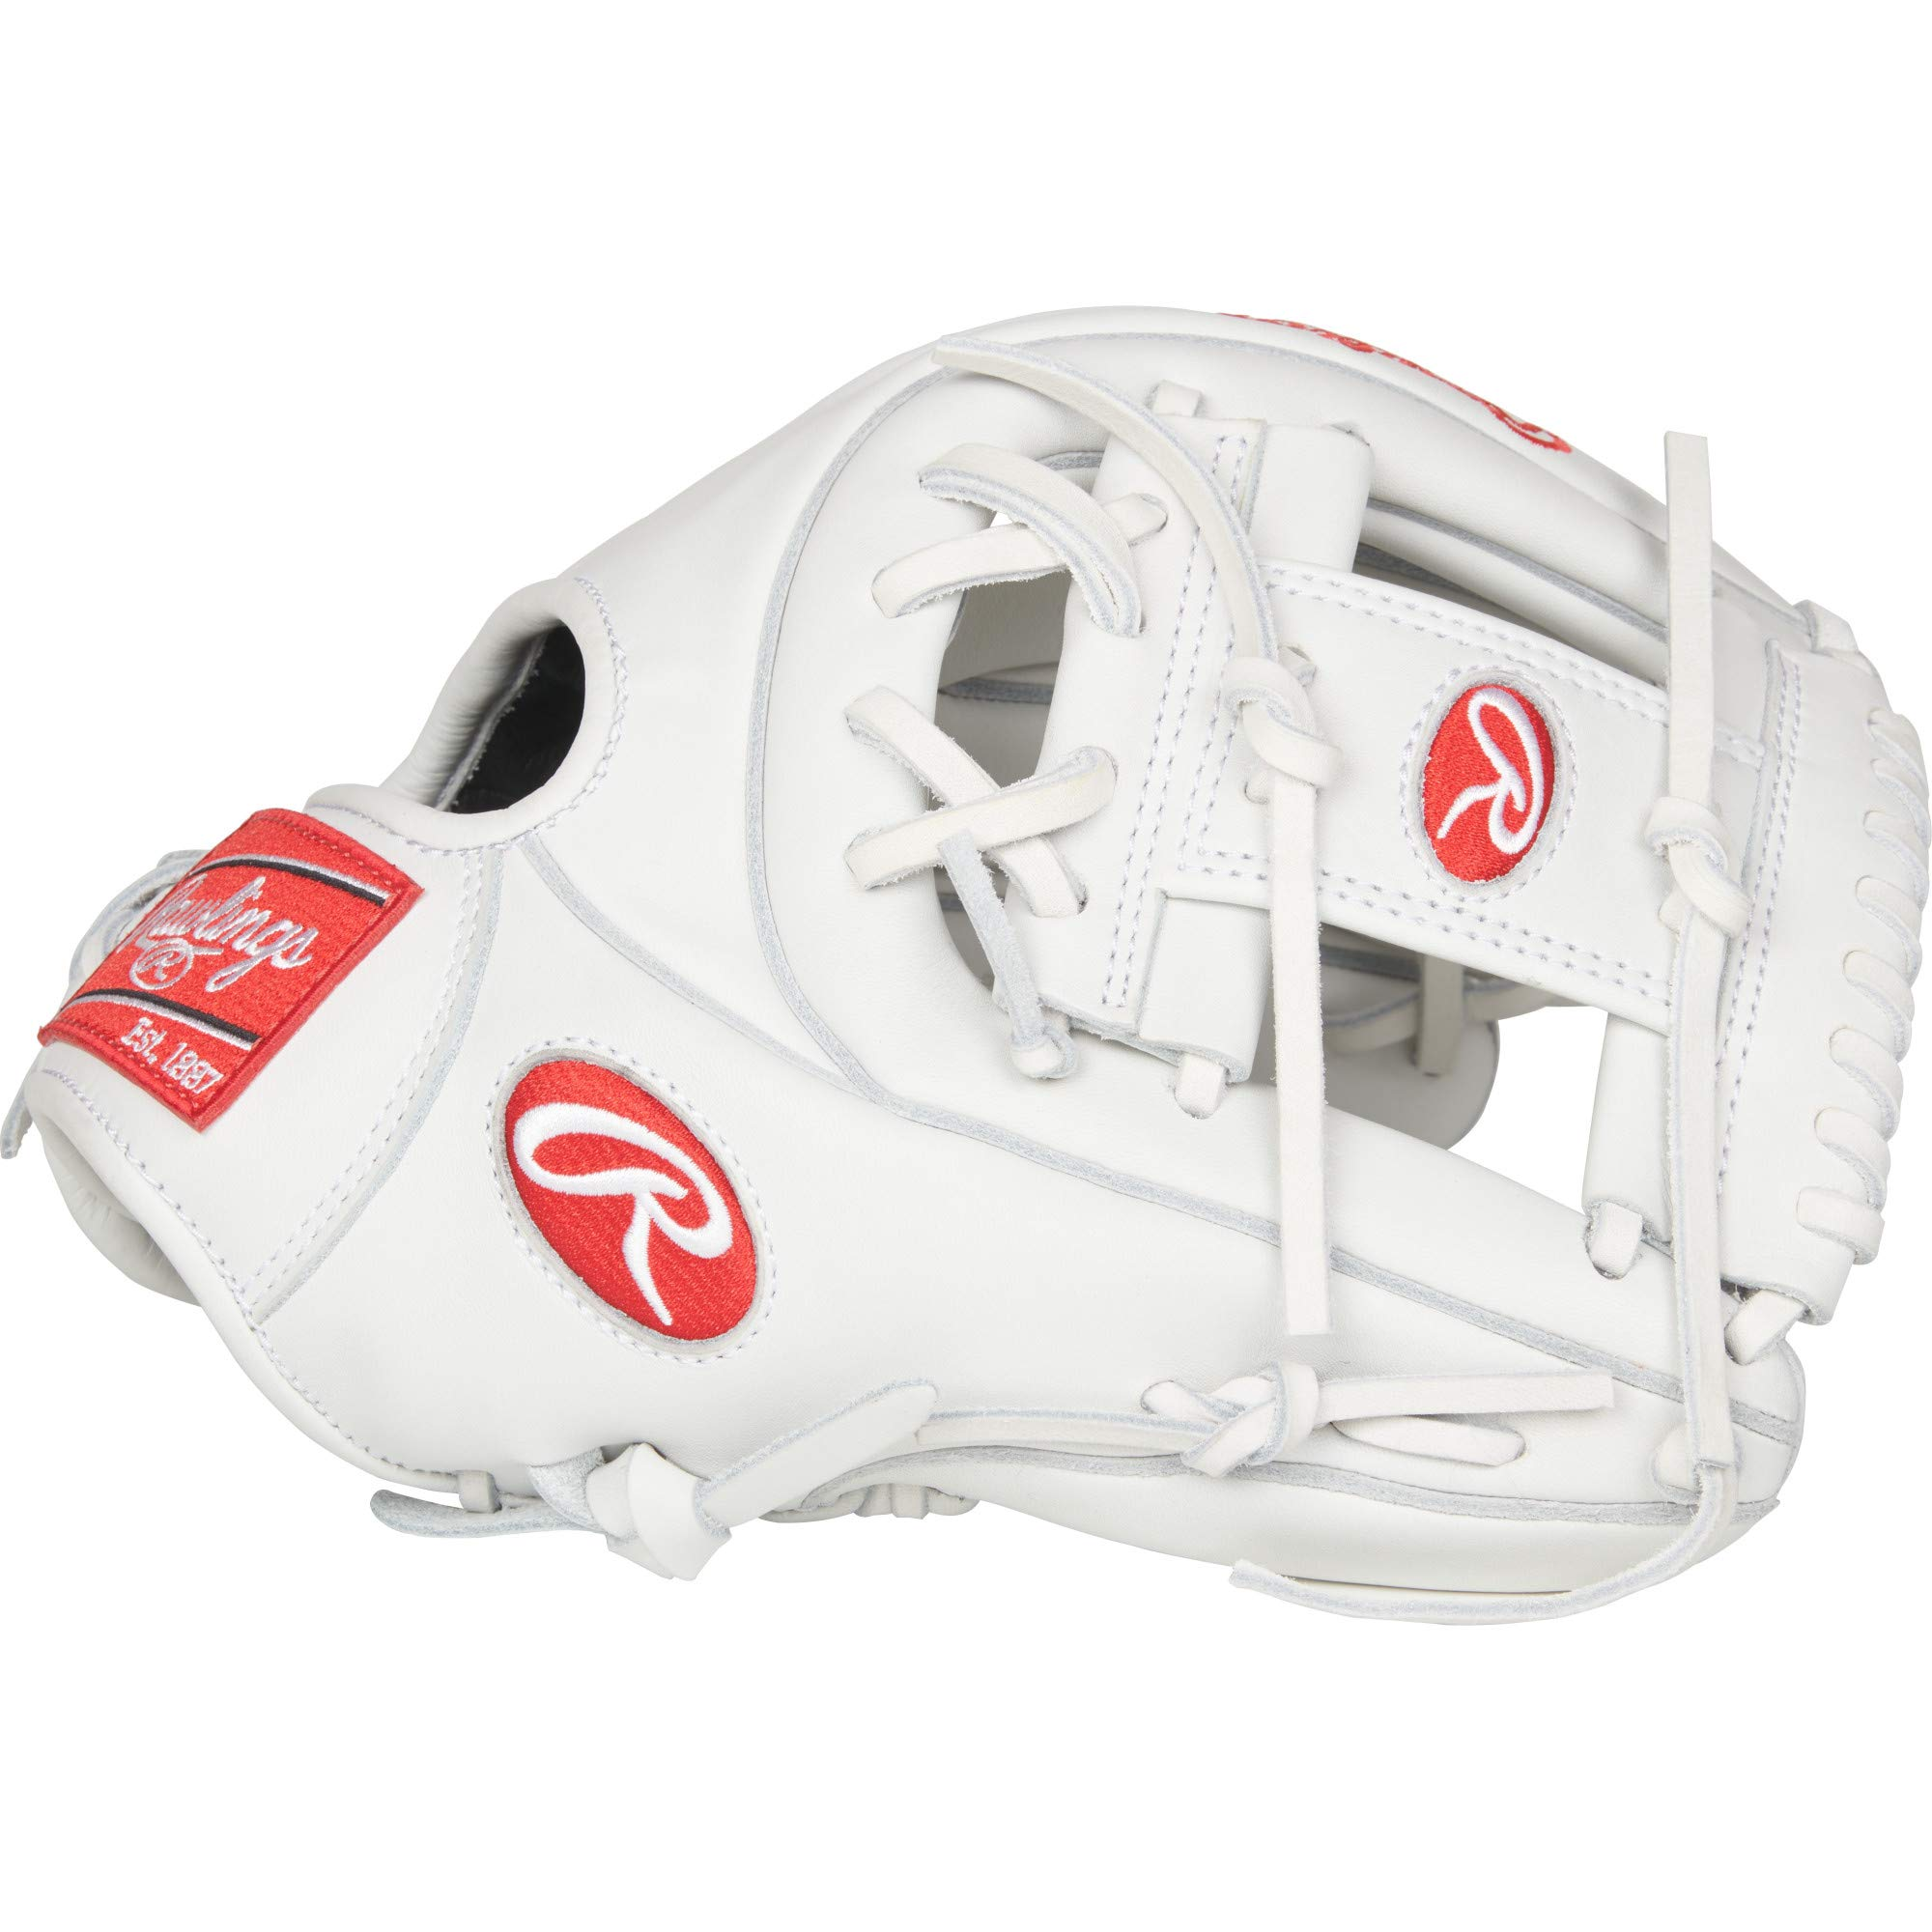 Rawlings RLA715-2W-3/0 Liberty Advanced Softball Gloves (Right Hand), White, Size 11.75 by Rawlings Sporting Goods